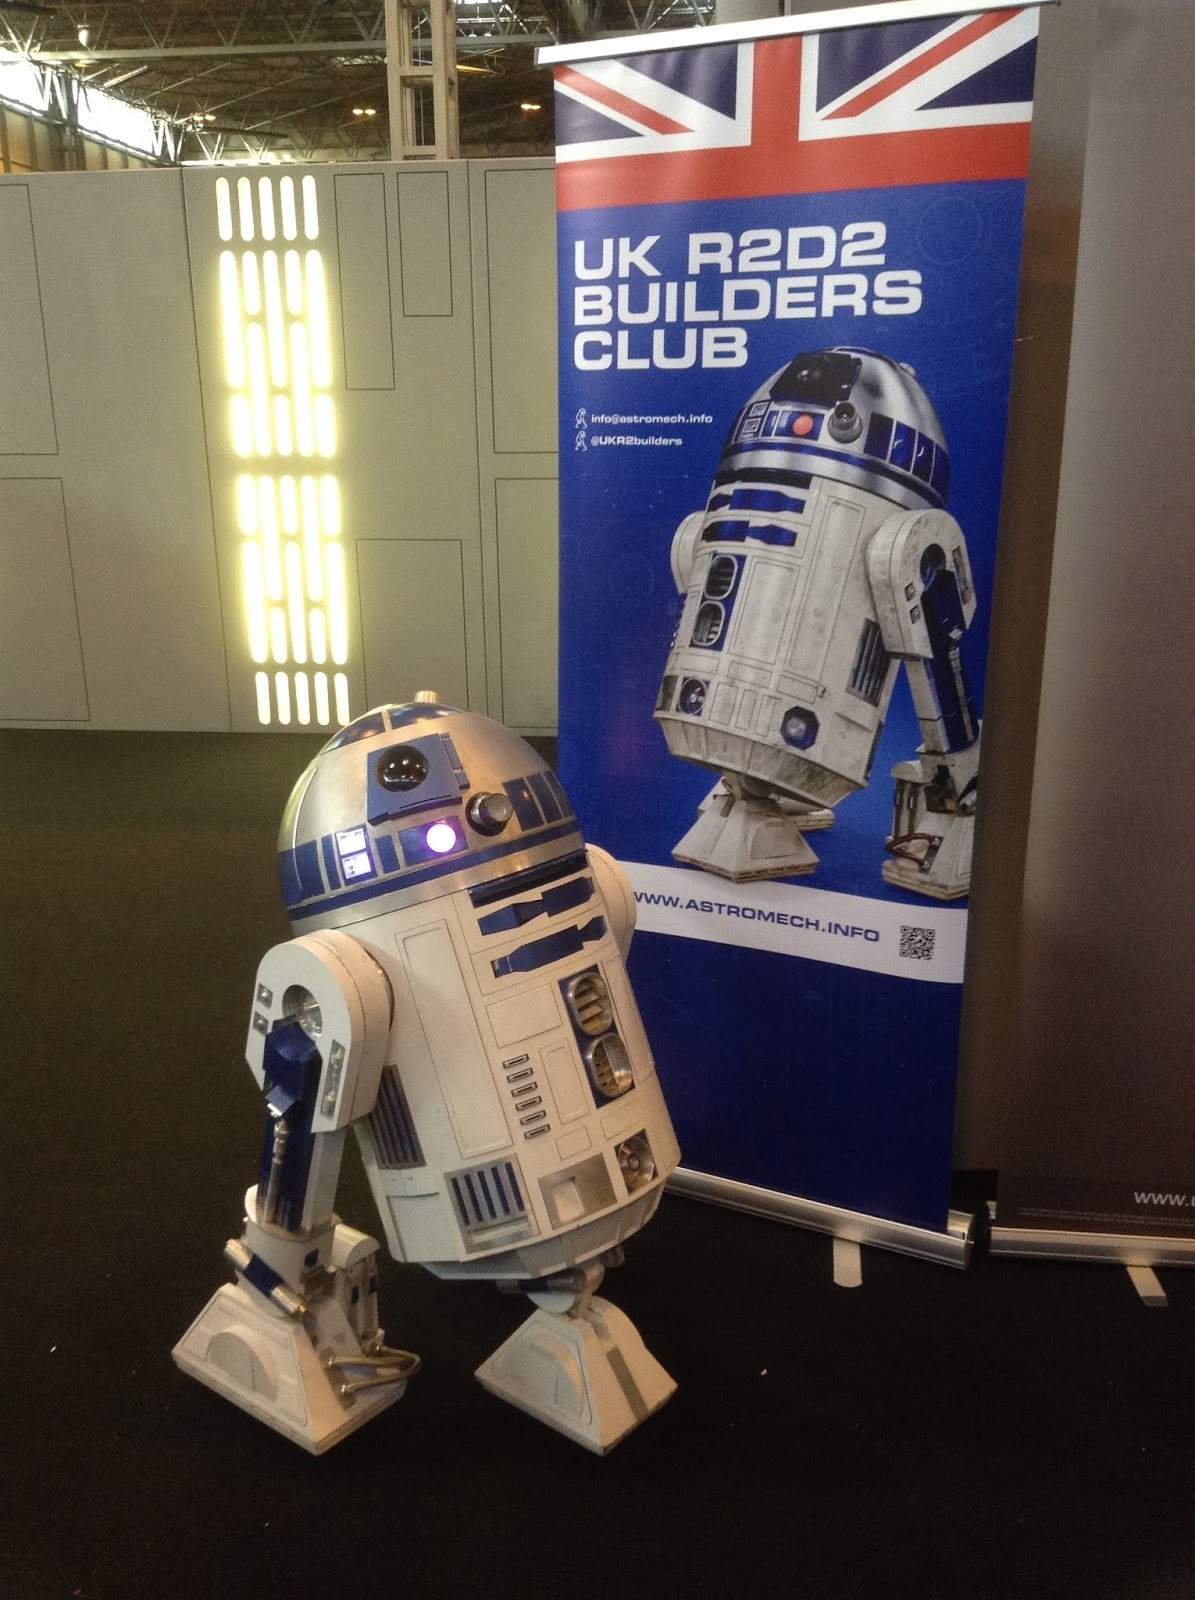 I ll be attending with R5 D4 & bringing along my R4 dome on the Sunday